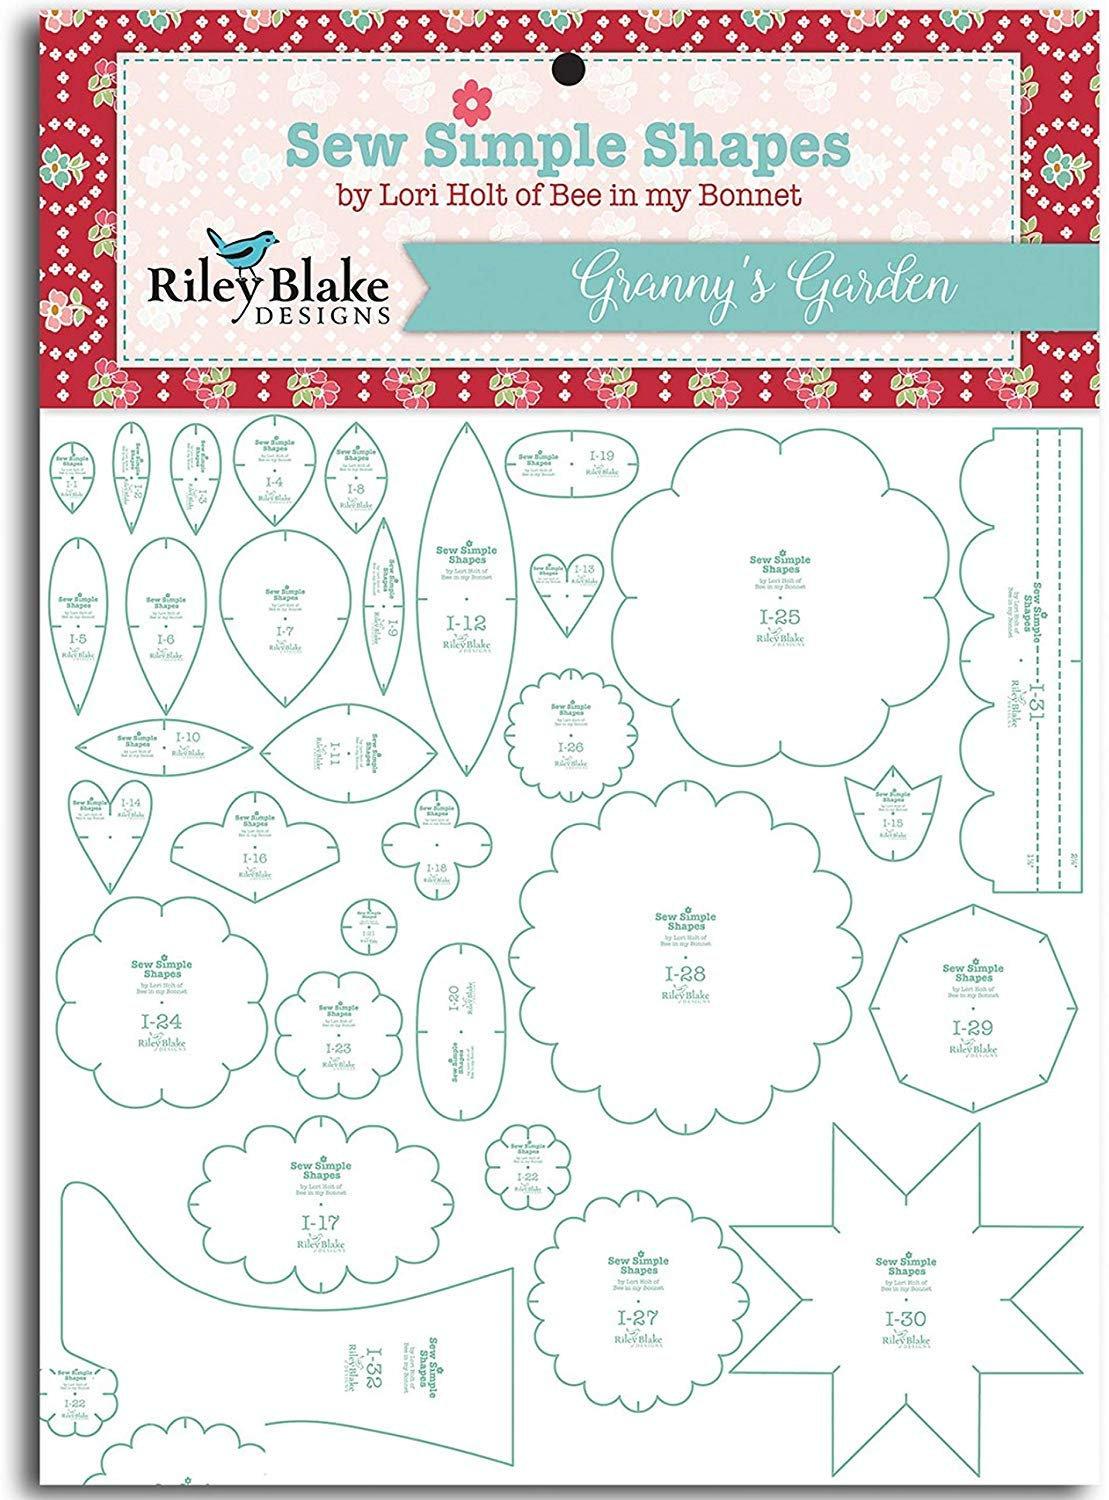 Granny's Garden Sew Simple Shapes 32 Quilt Templates Set by Lori Holt ST-2674 by Riley Blake Designs